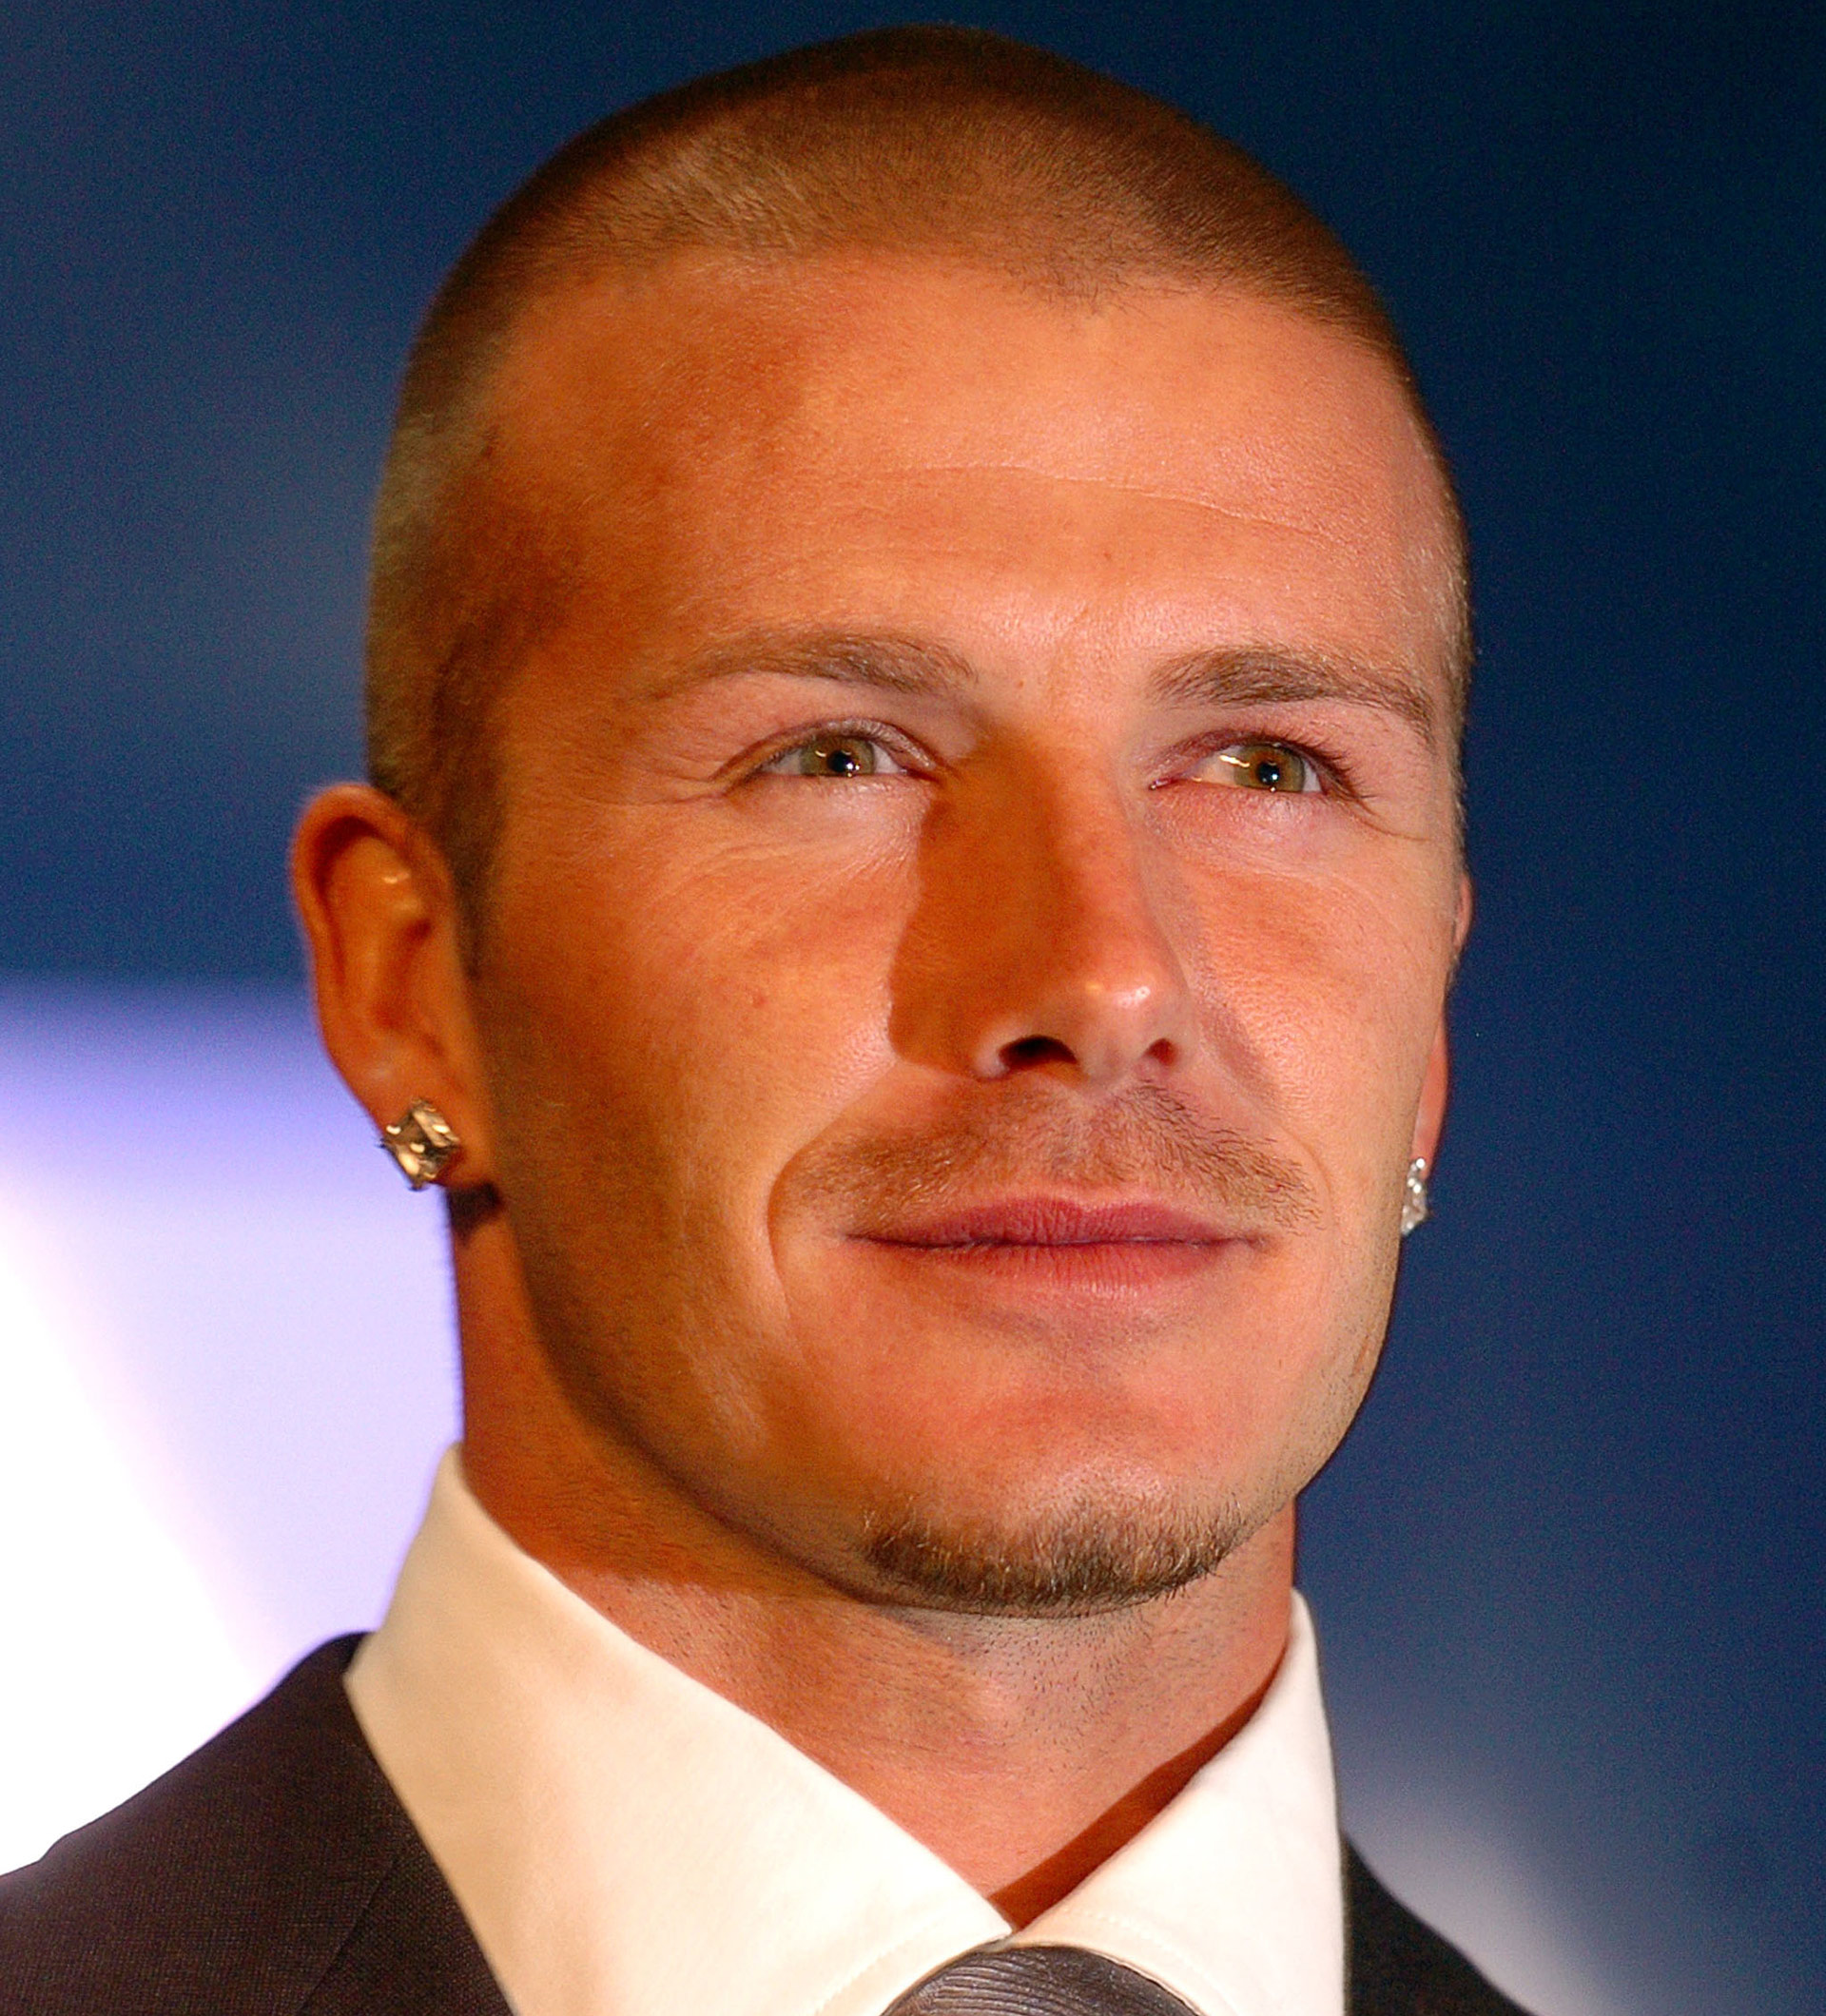 david beckham buzz hair cut